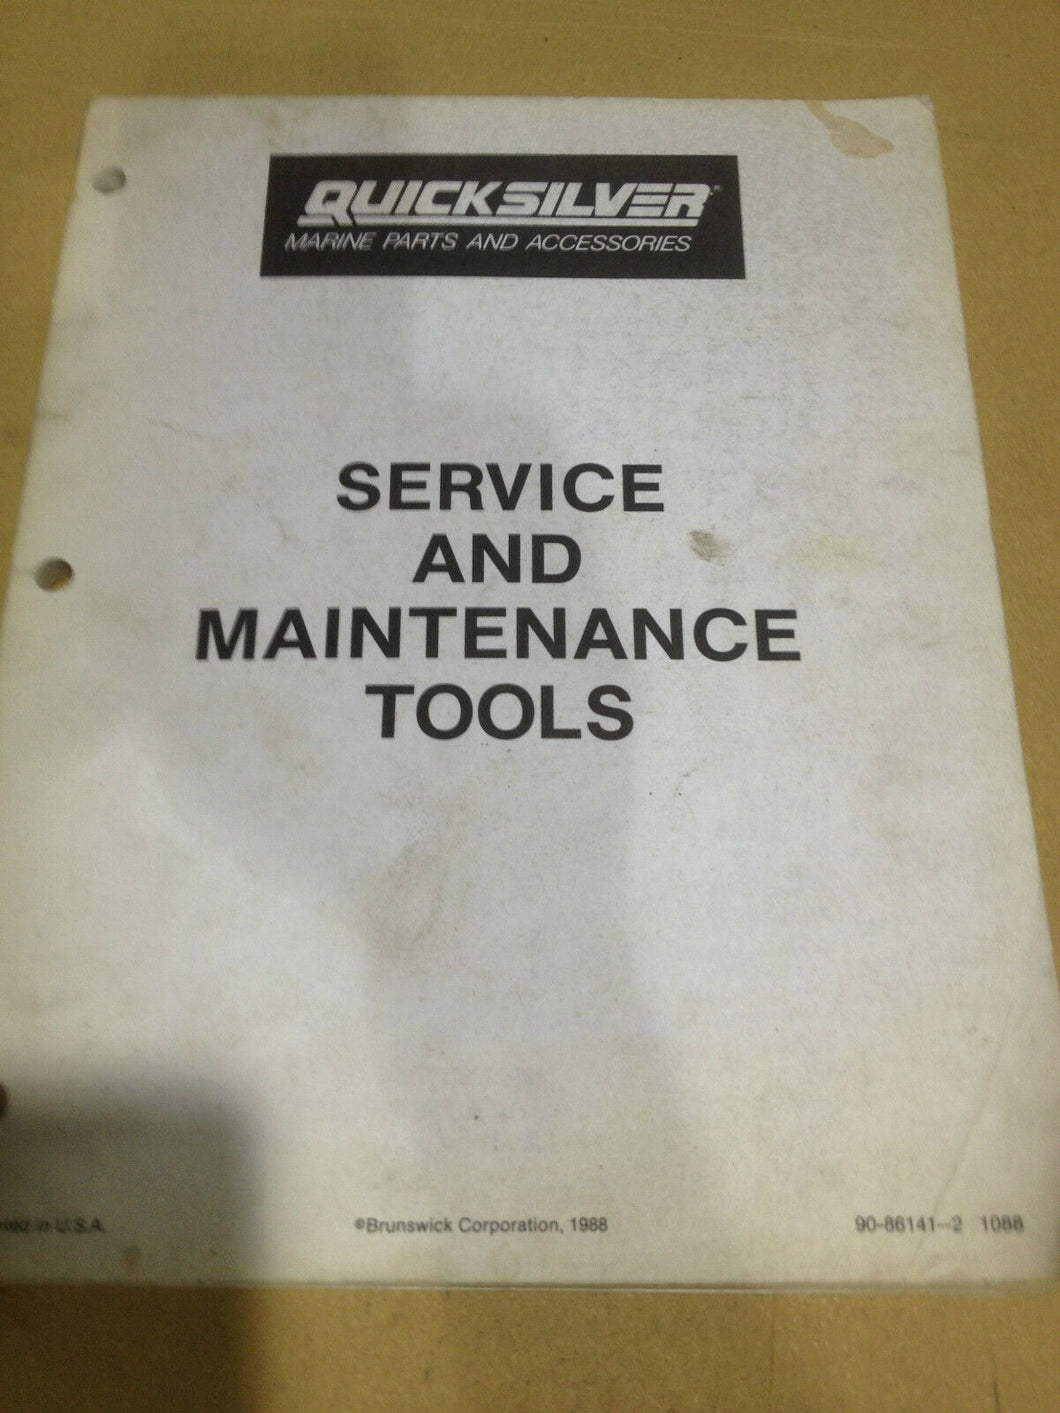 Quicksilver Marine parts and Accessories service and maintenance tools manual 88